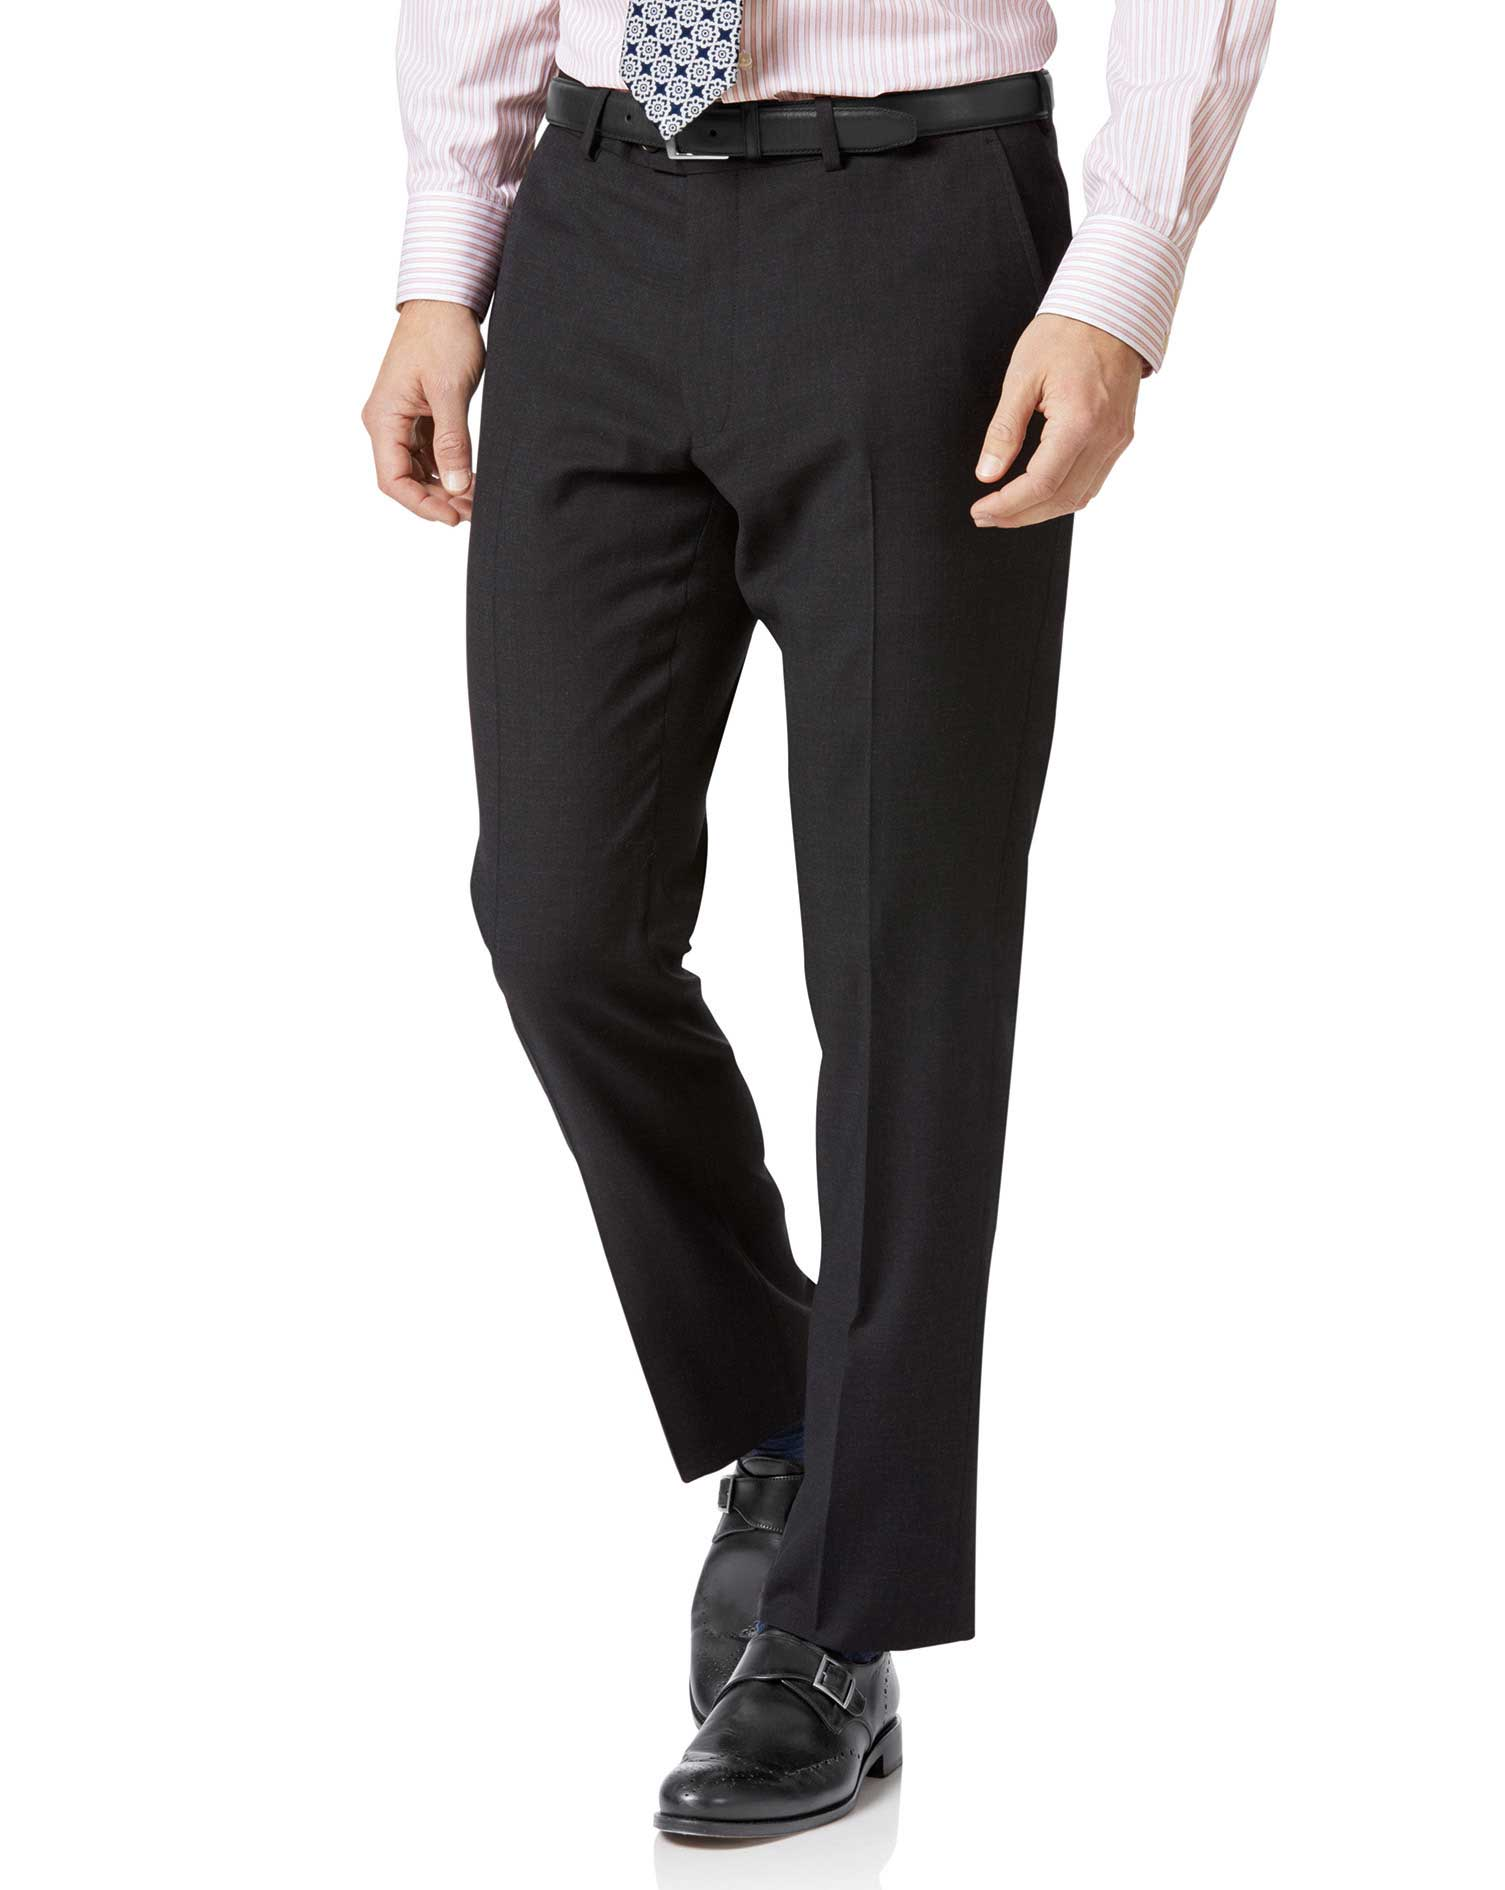 Charcoal Slim Fit Twill Business Suit Trousers Size W42 L34 by Charles Tyrwhitt